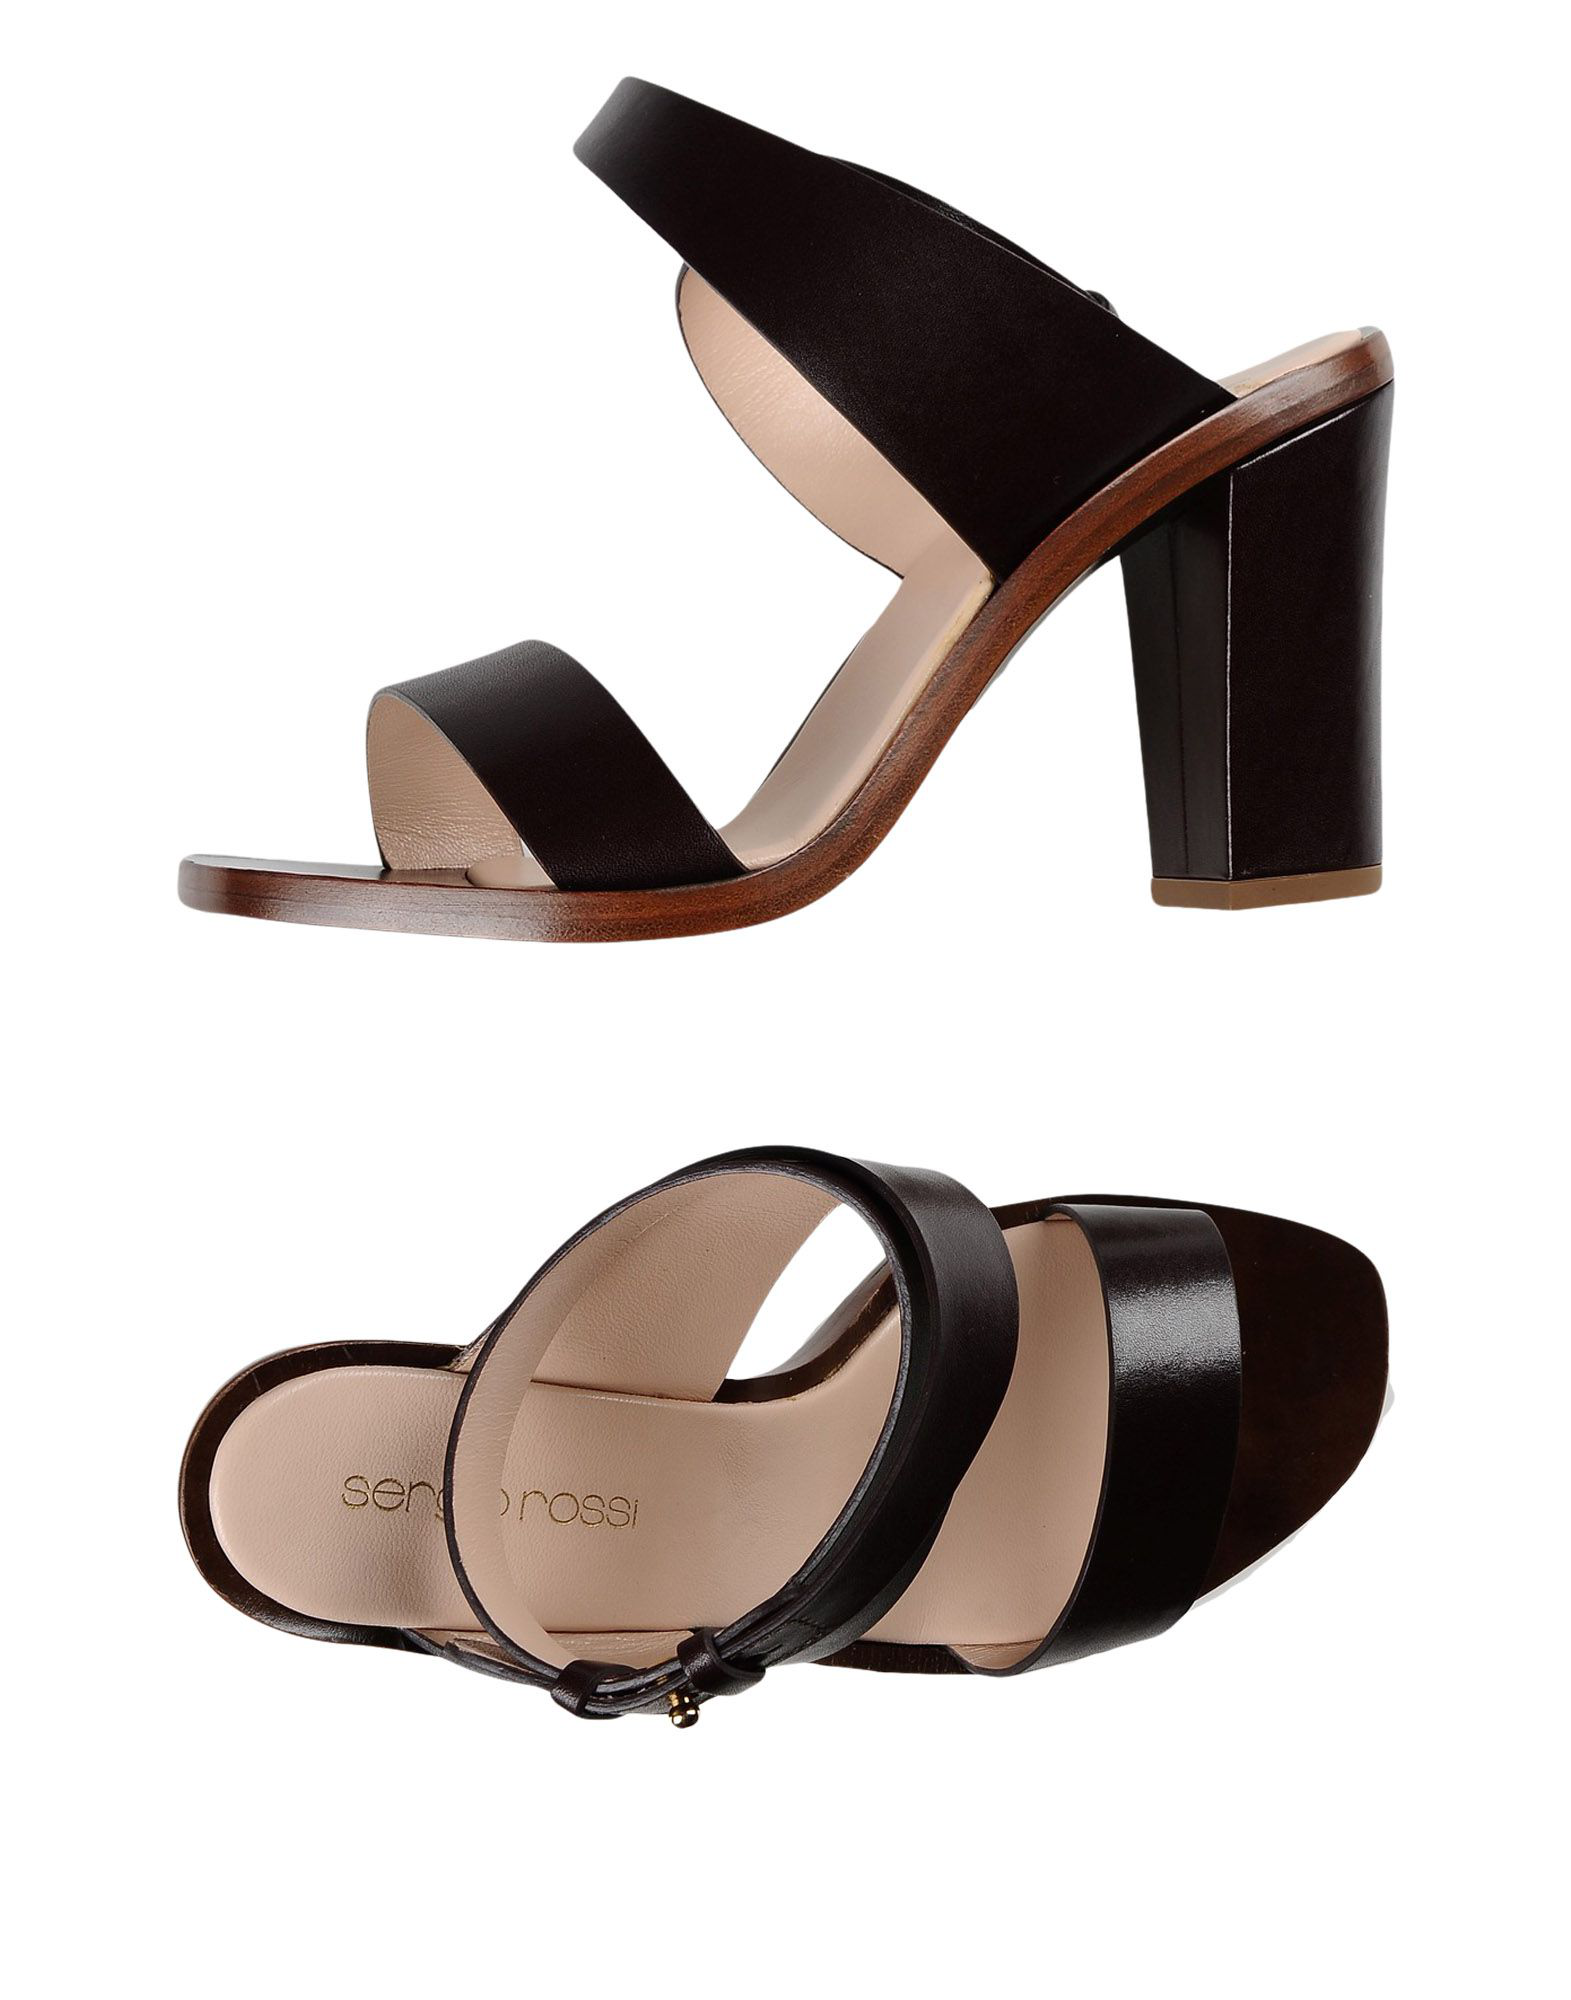 Sergio Rossi Sandals In Dark Brown